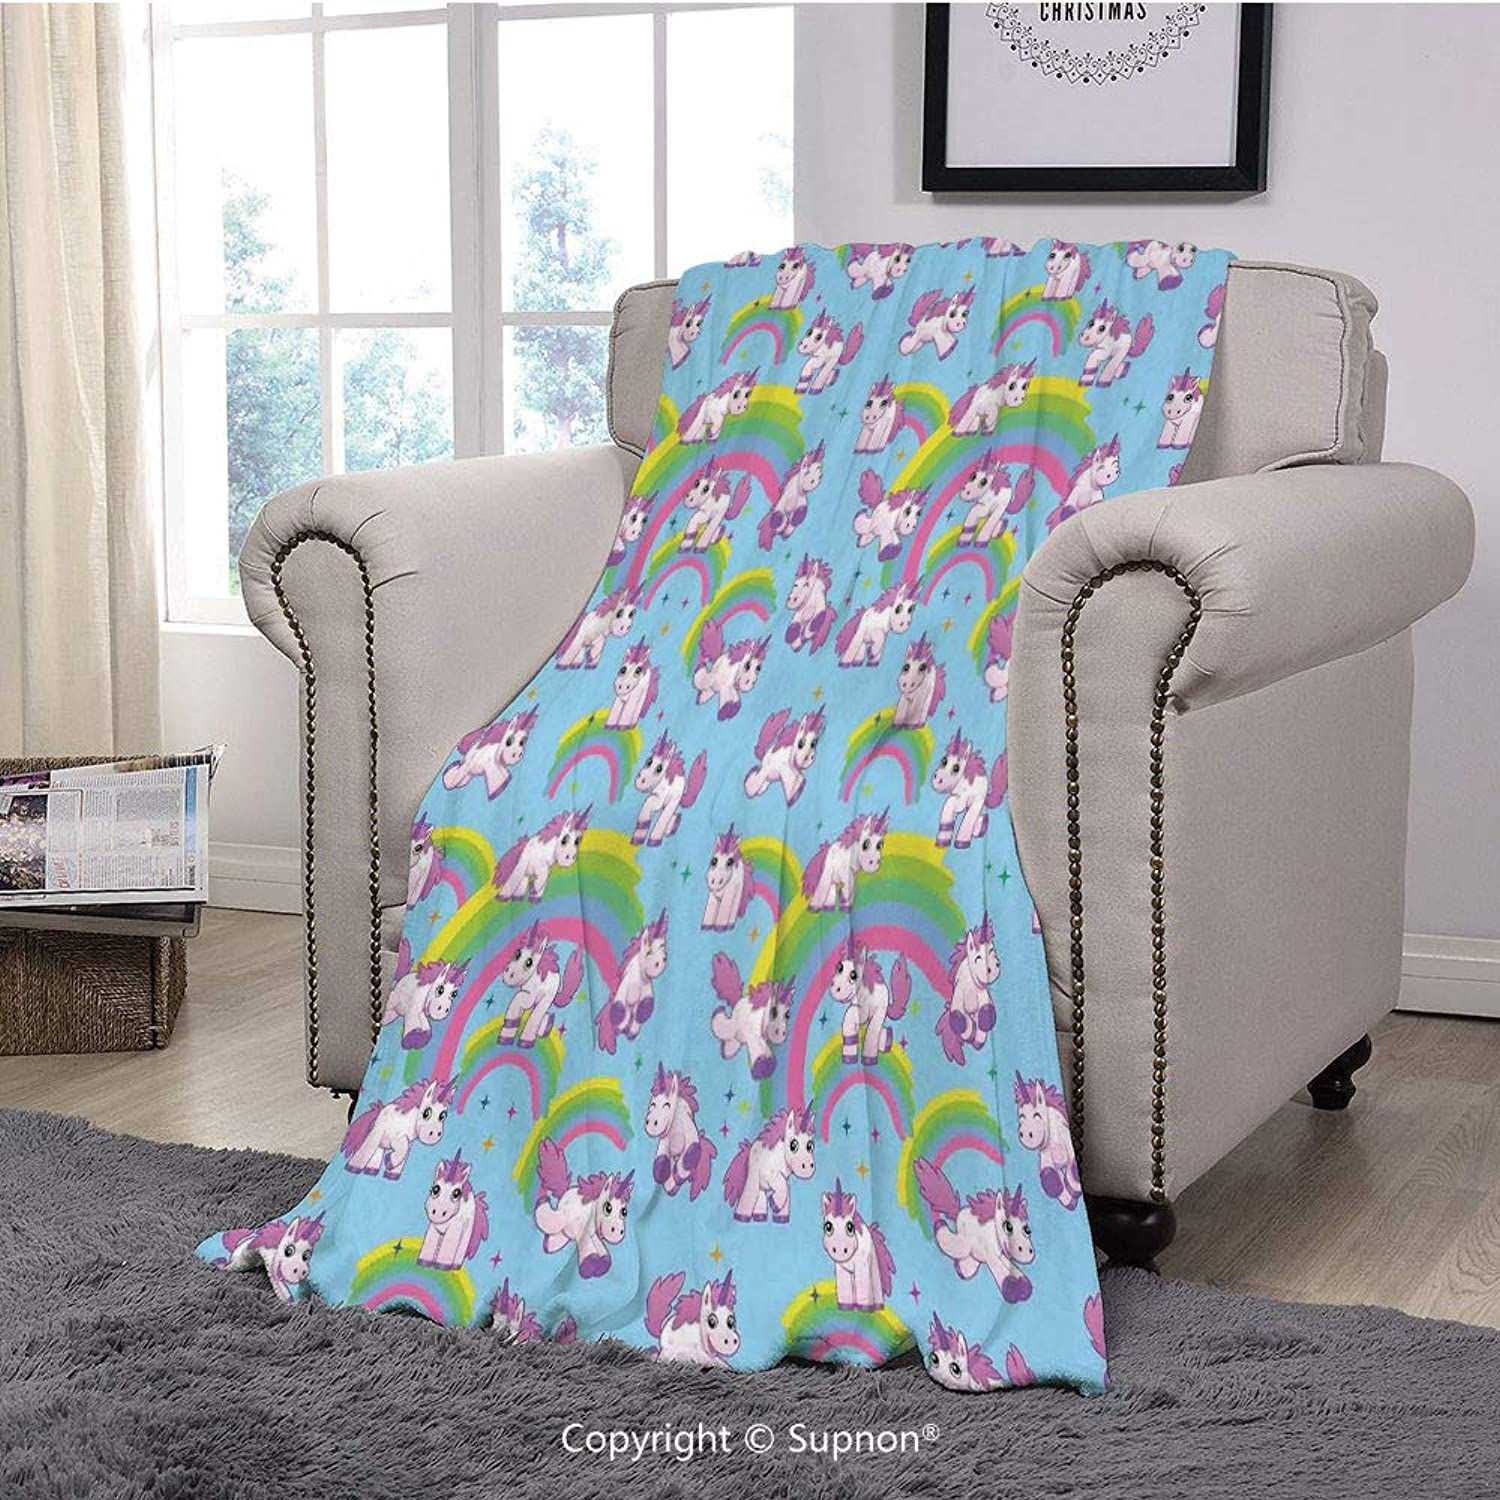 BeeMeng Printing Blanket Coral Plush Super Soft Decorative Throw Blanket,Unicorn Home and Kids Decor,Repeating Pattern Mystical Ancient Beast Purity Grace Symbol Graphic,Multi(59  x 59 )